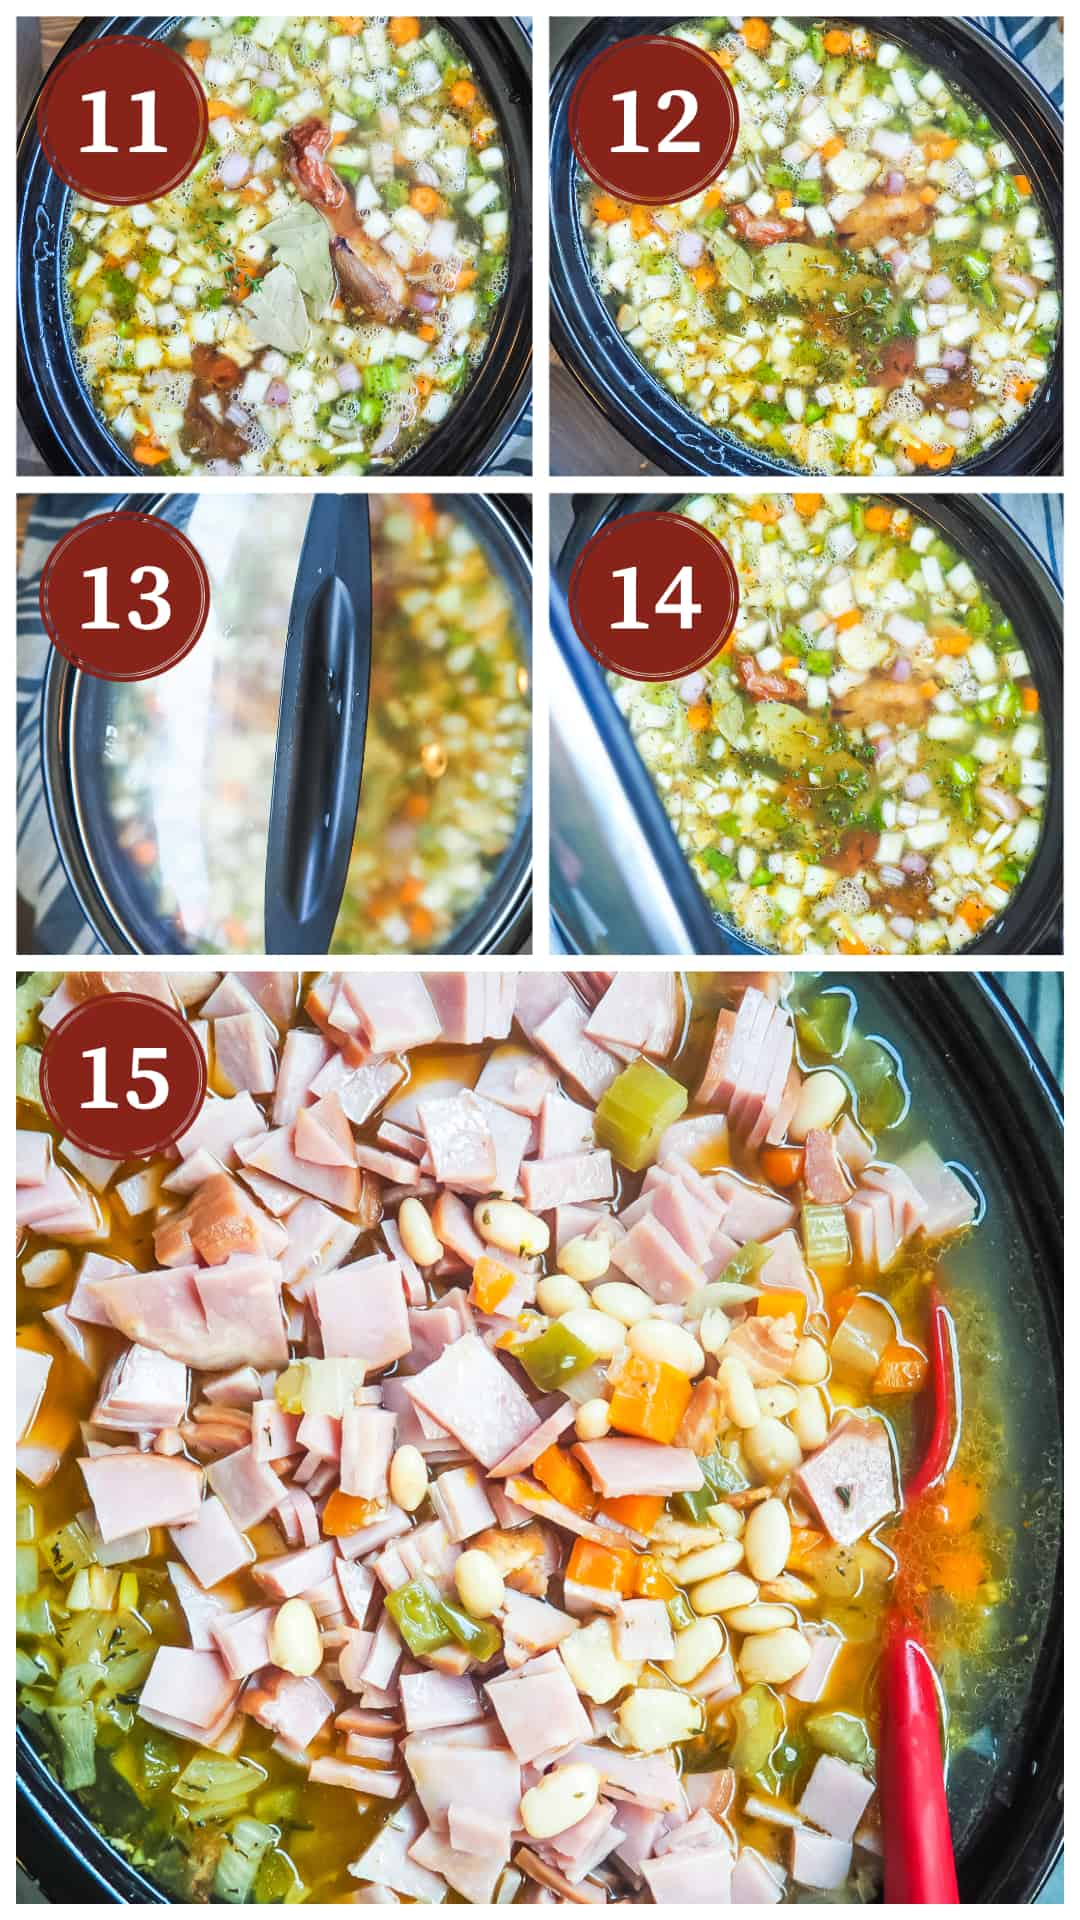 Images showing the process of cooking white beans and ham in a slow cooker, steps 11 - 15.